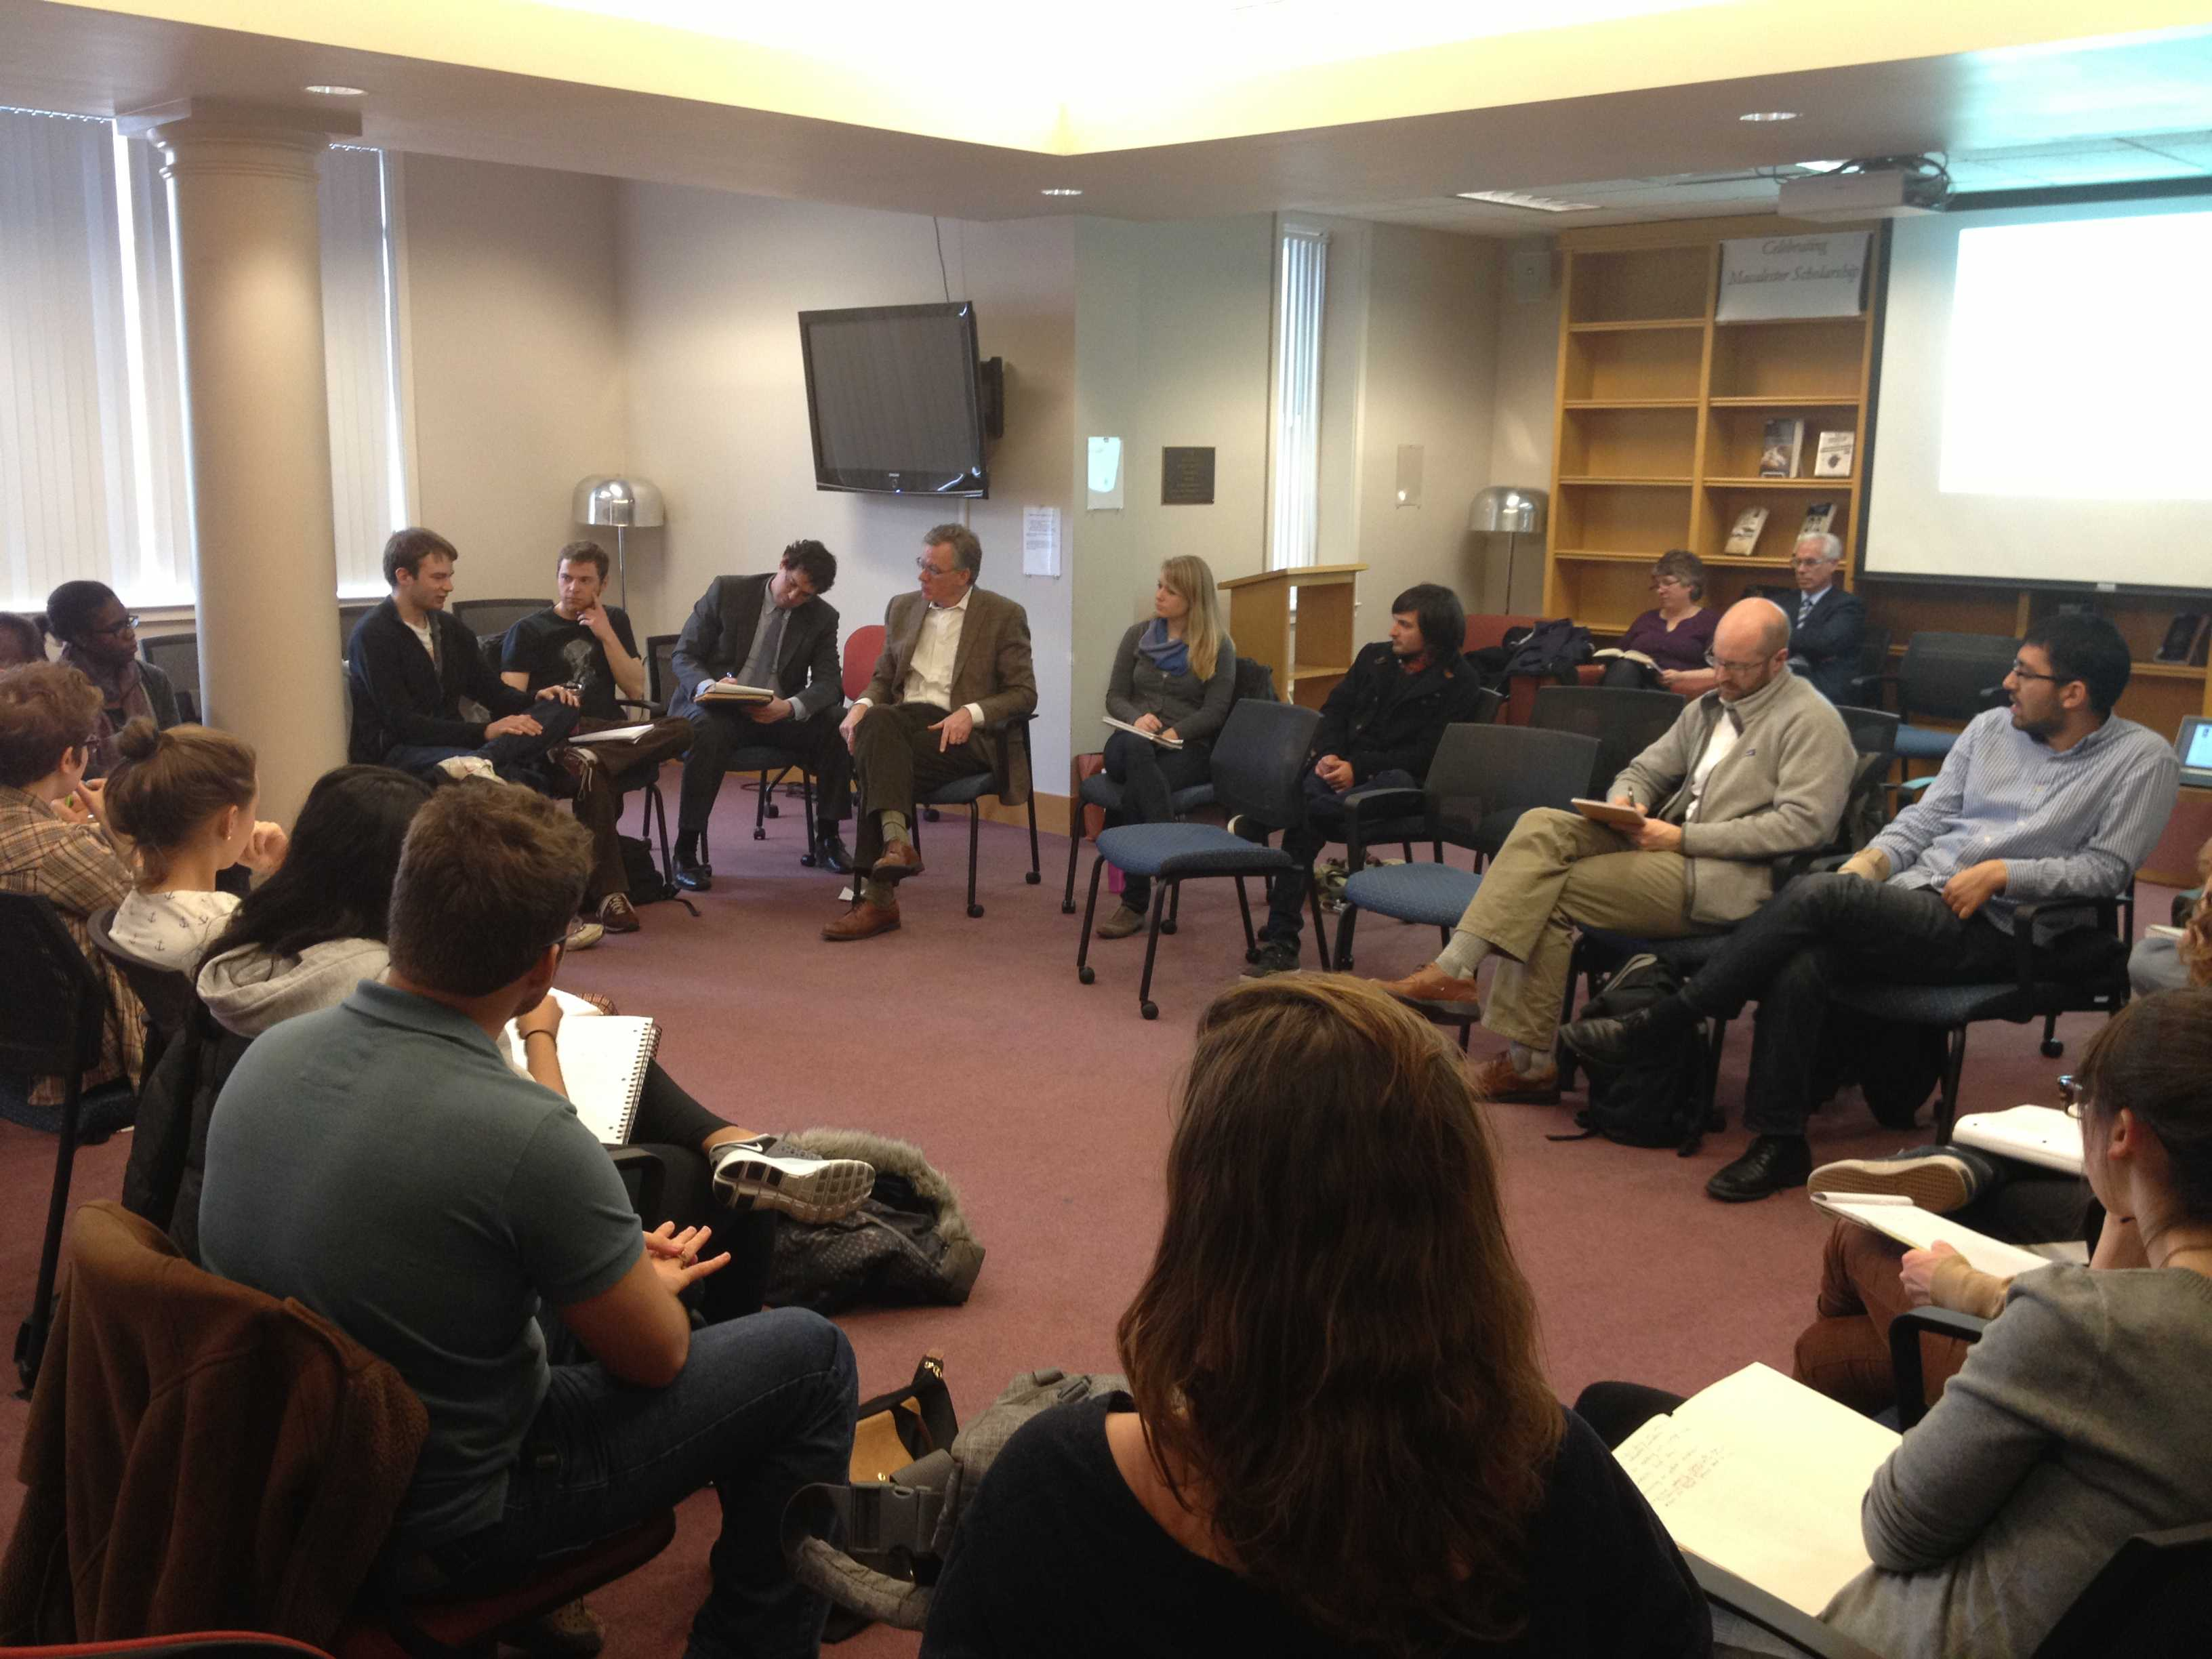 Round table discussion students - St Paul Mayor Chris Coleman Visited Campus Monday For A Roundtable Discussion With